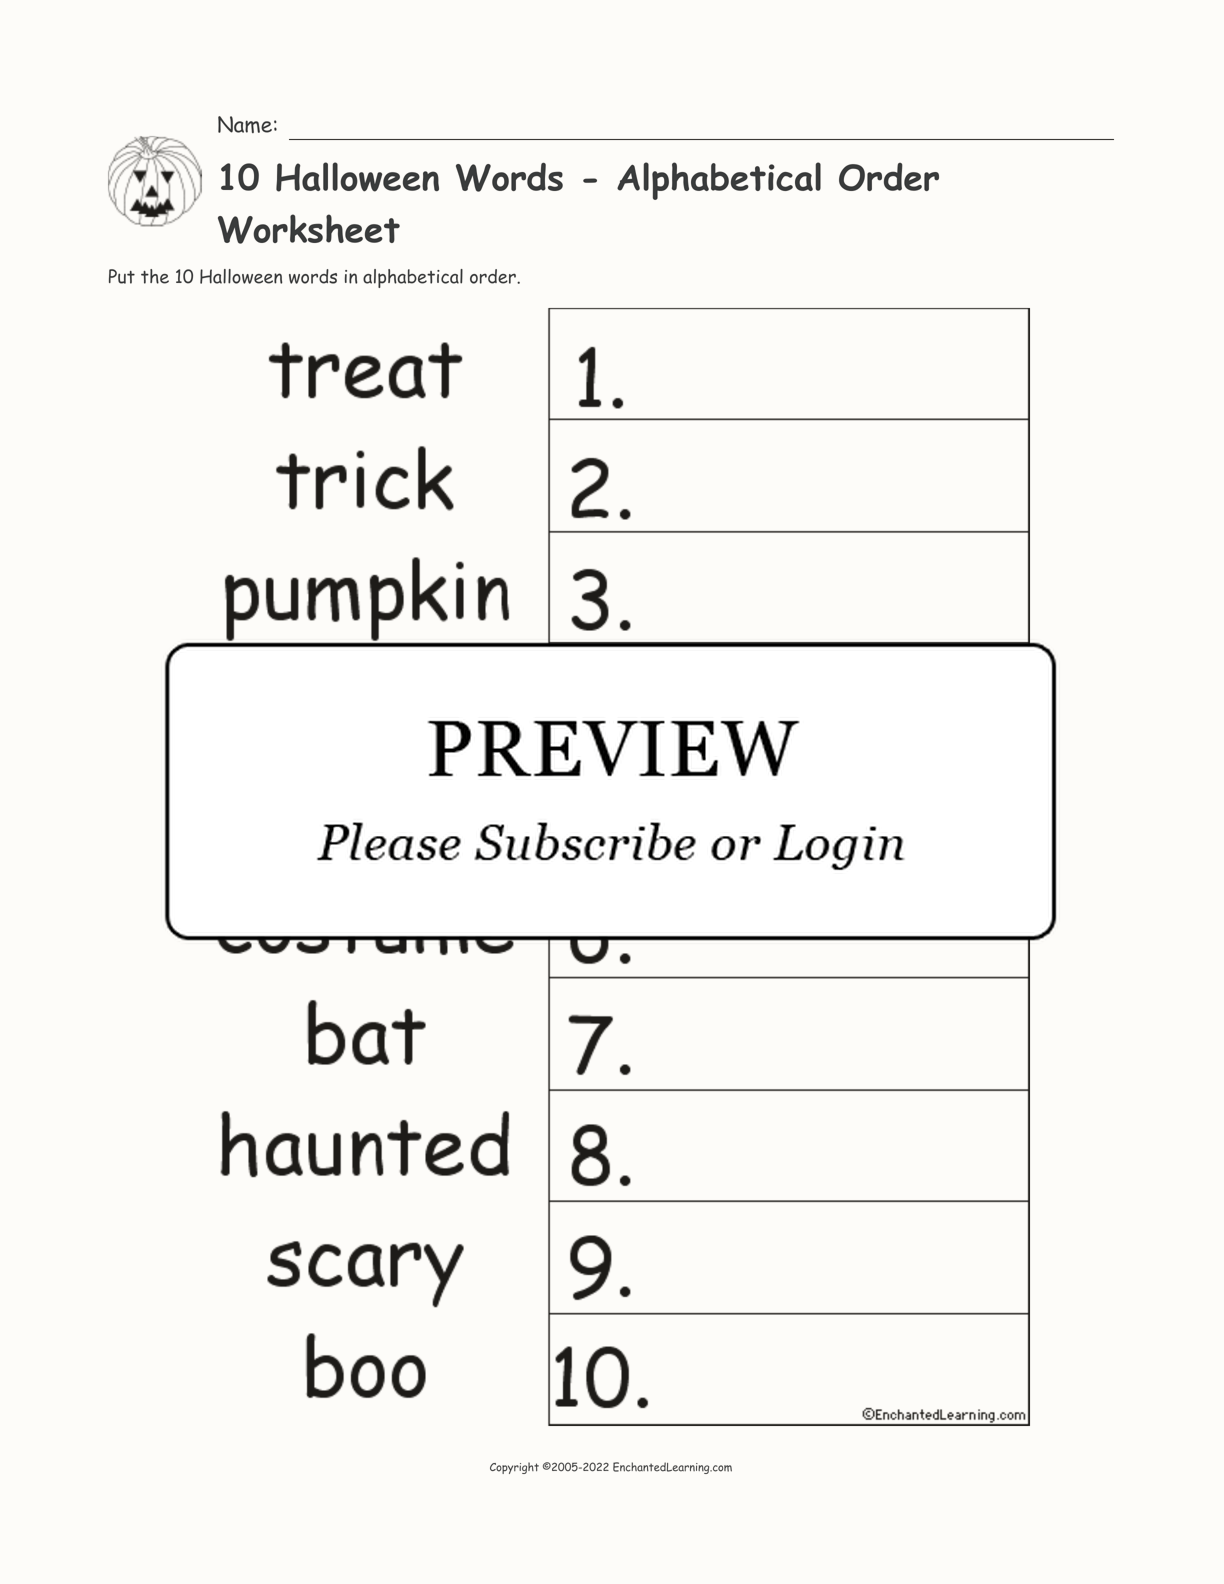 10 Halloween Words